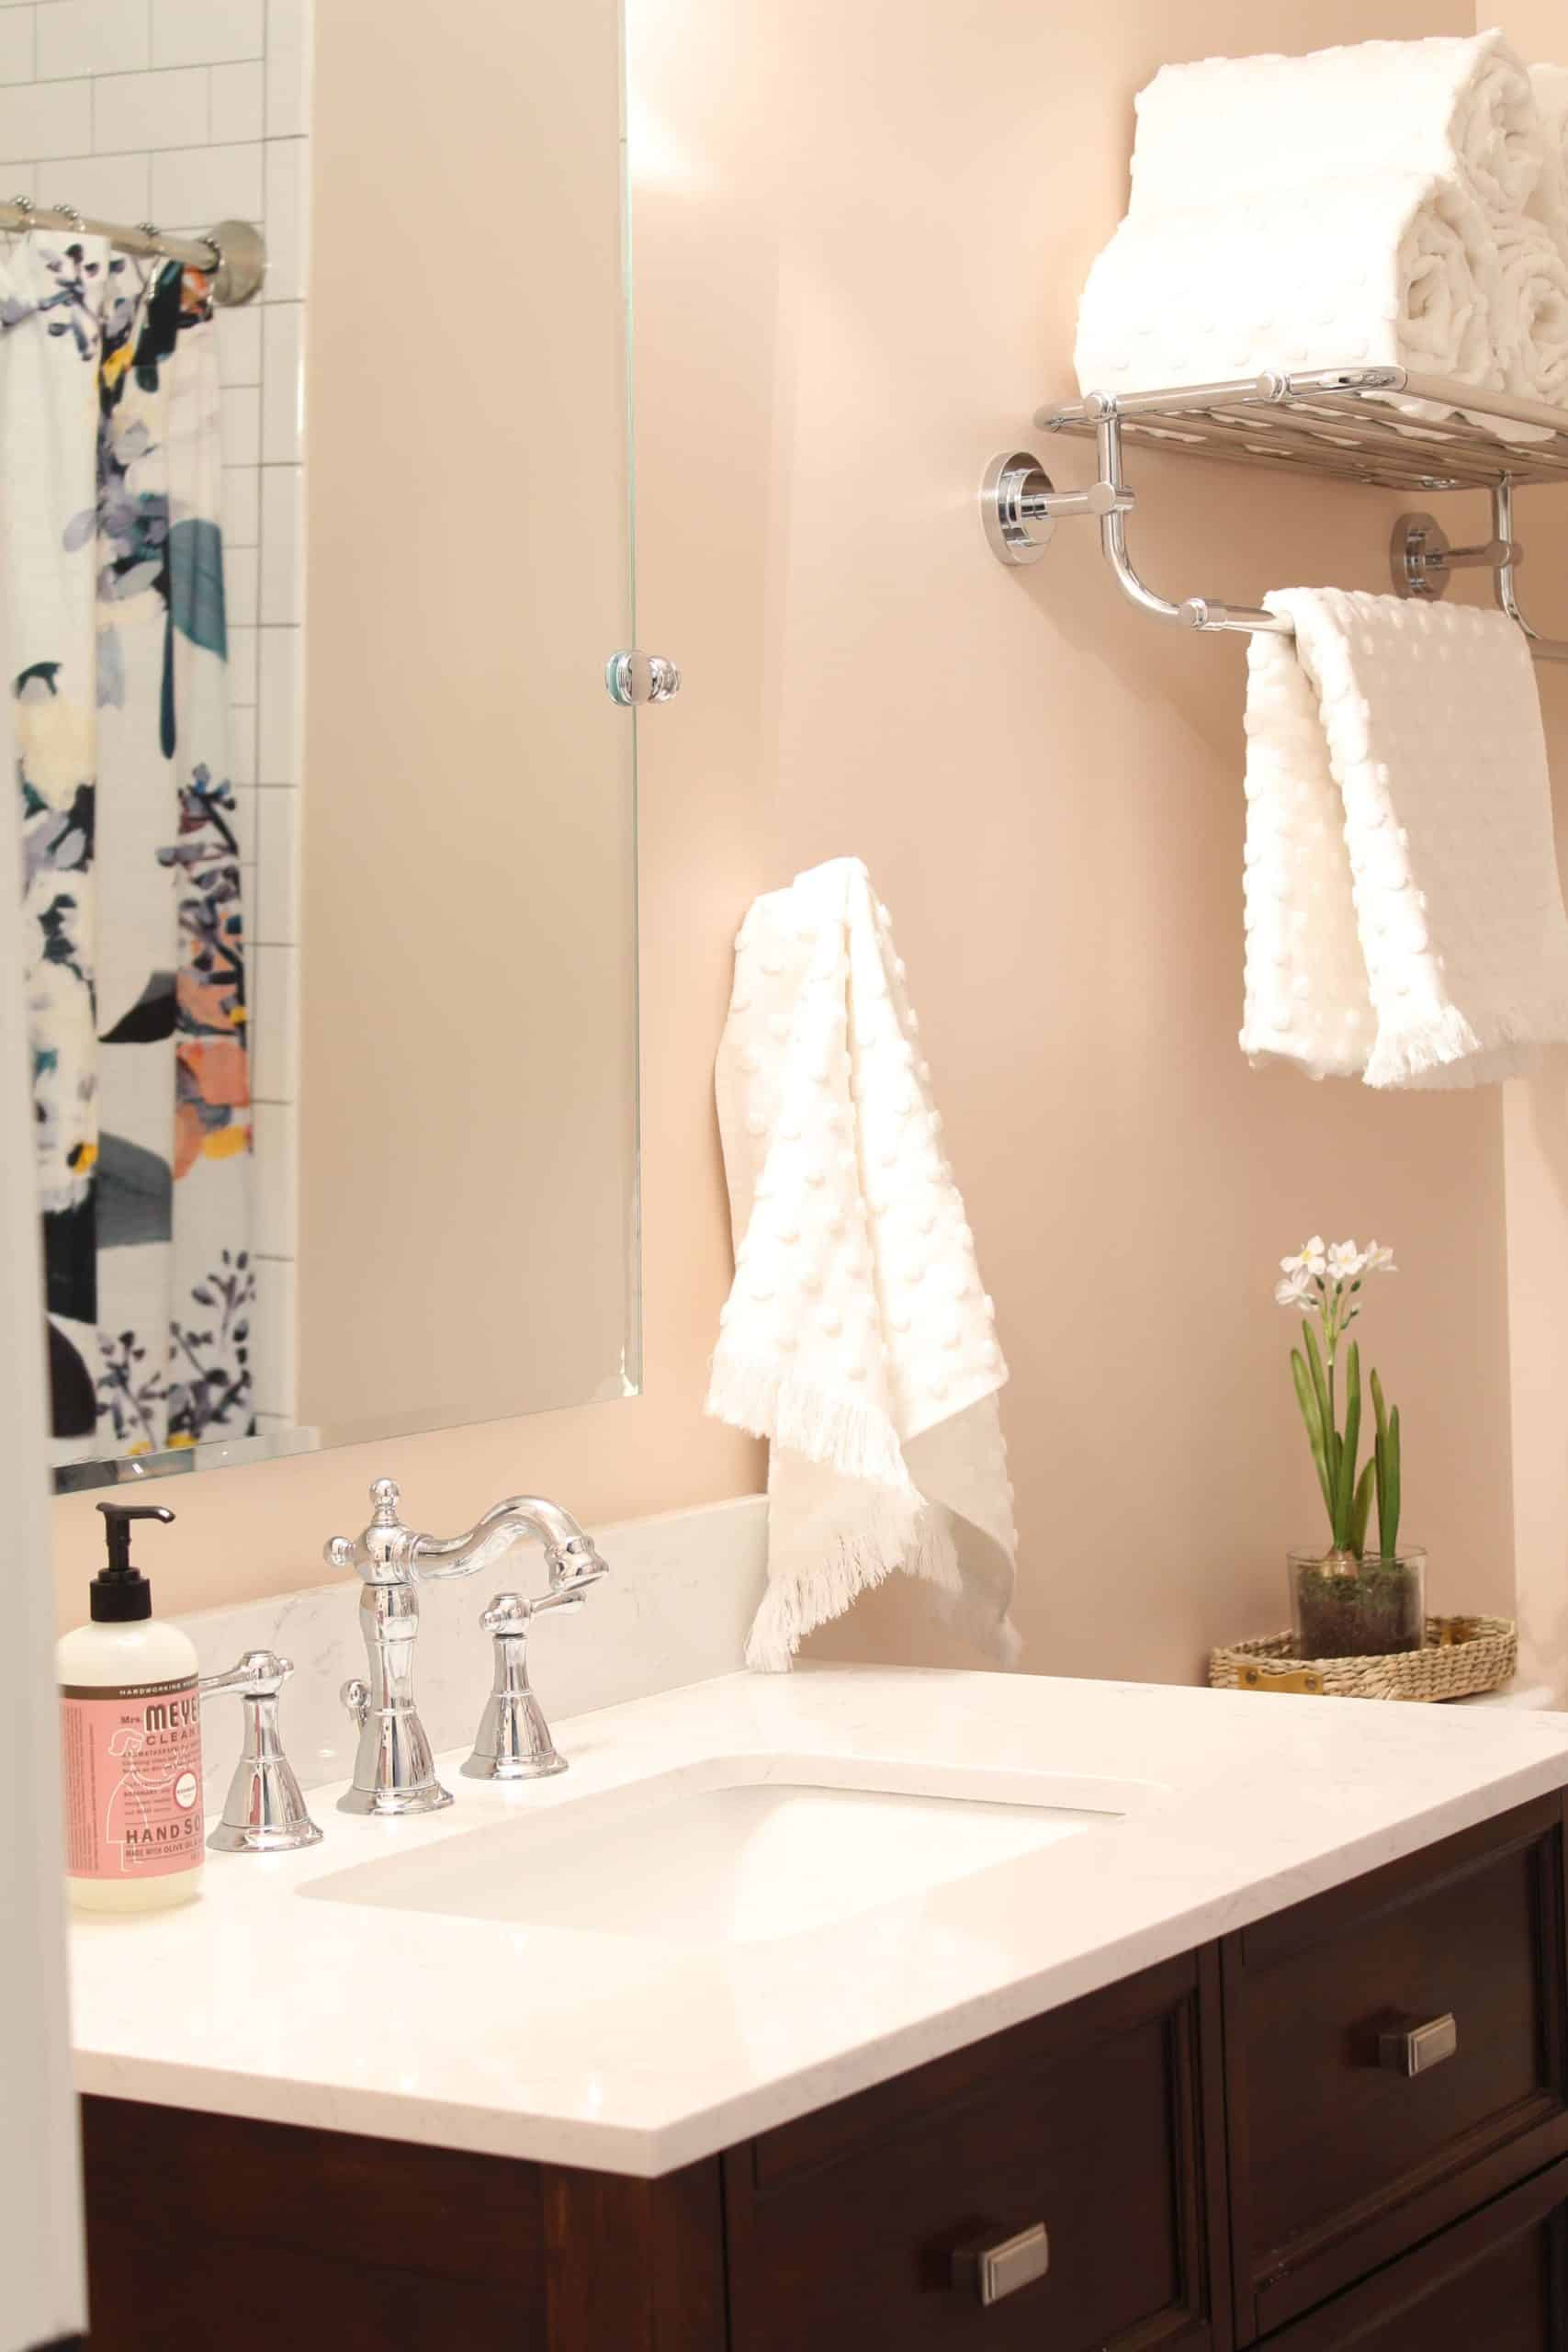 anthropologie botanica shower curtain, bathroom with pink walls, white polka dot towels, white subway tile shower surround, bathroom with hotel towel rack